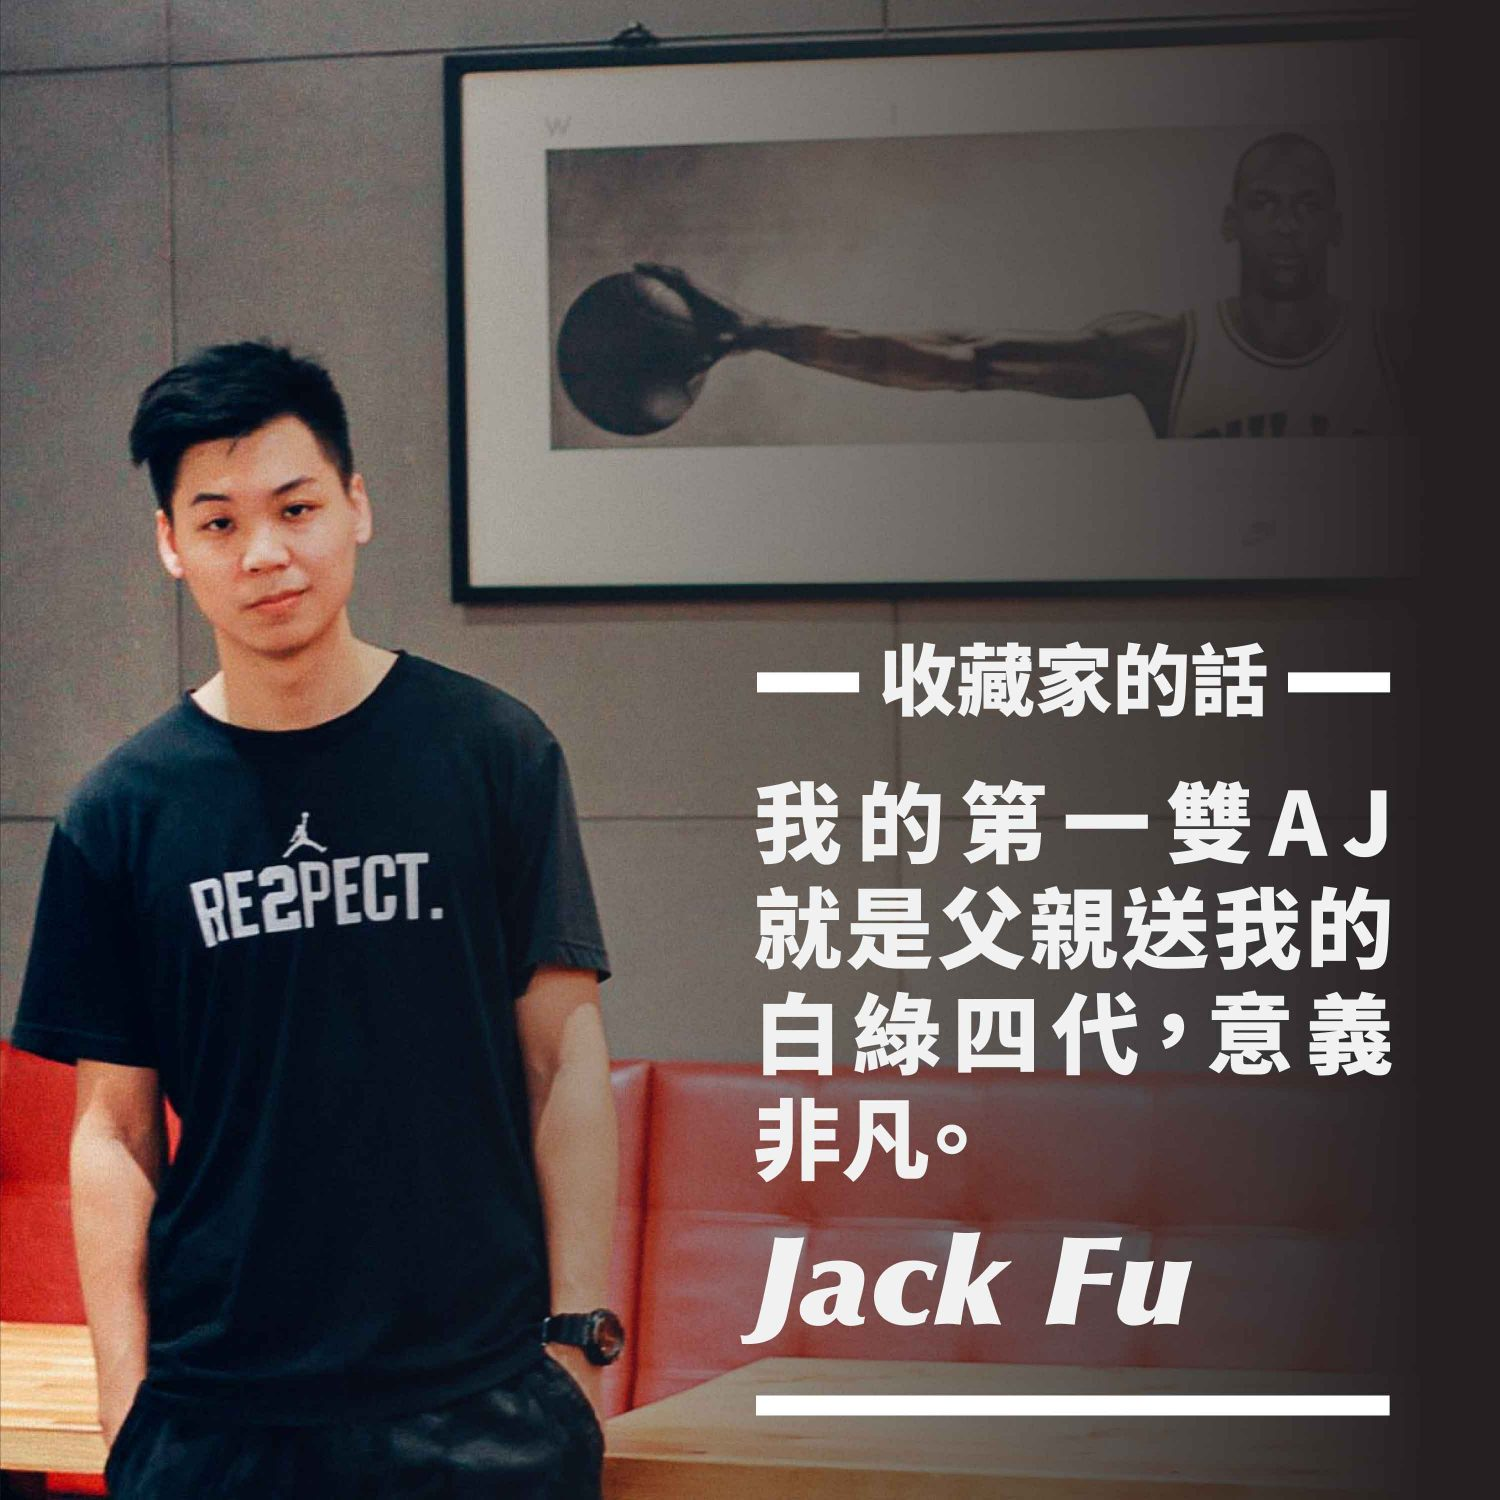 air-jordan-4-collector-jack-fu-quote-2